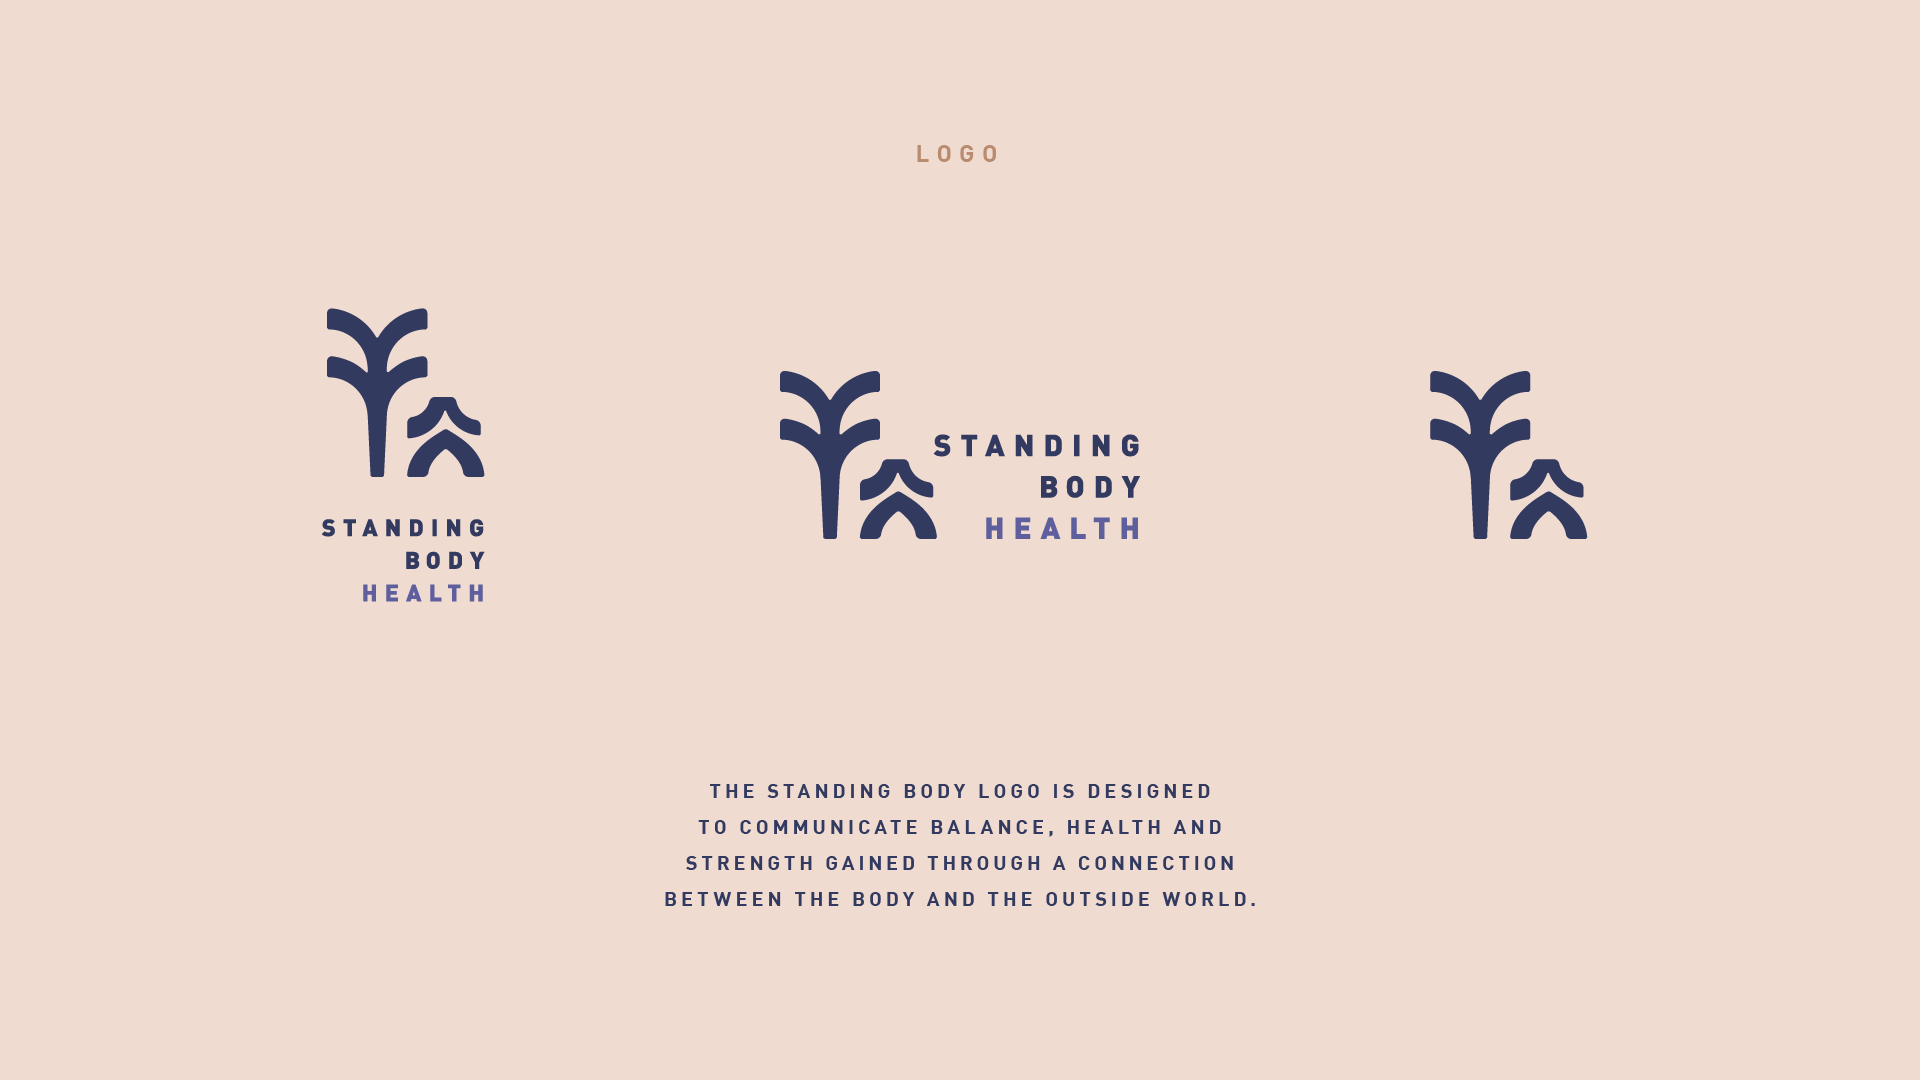 Standing Body logo variations